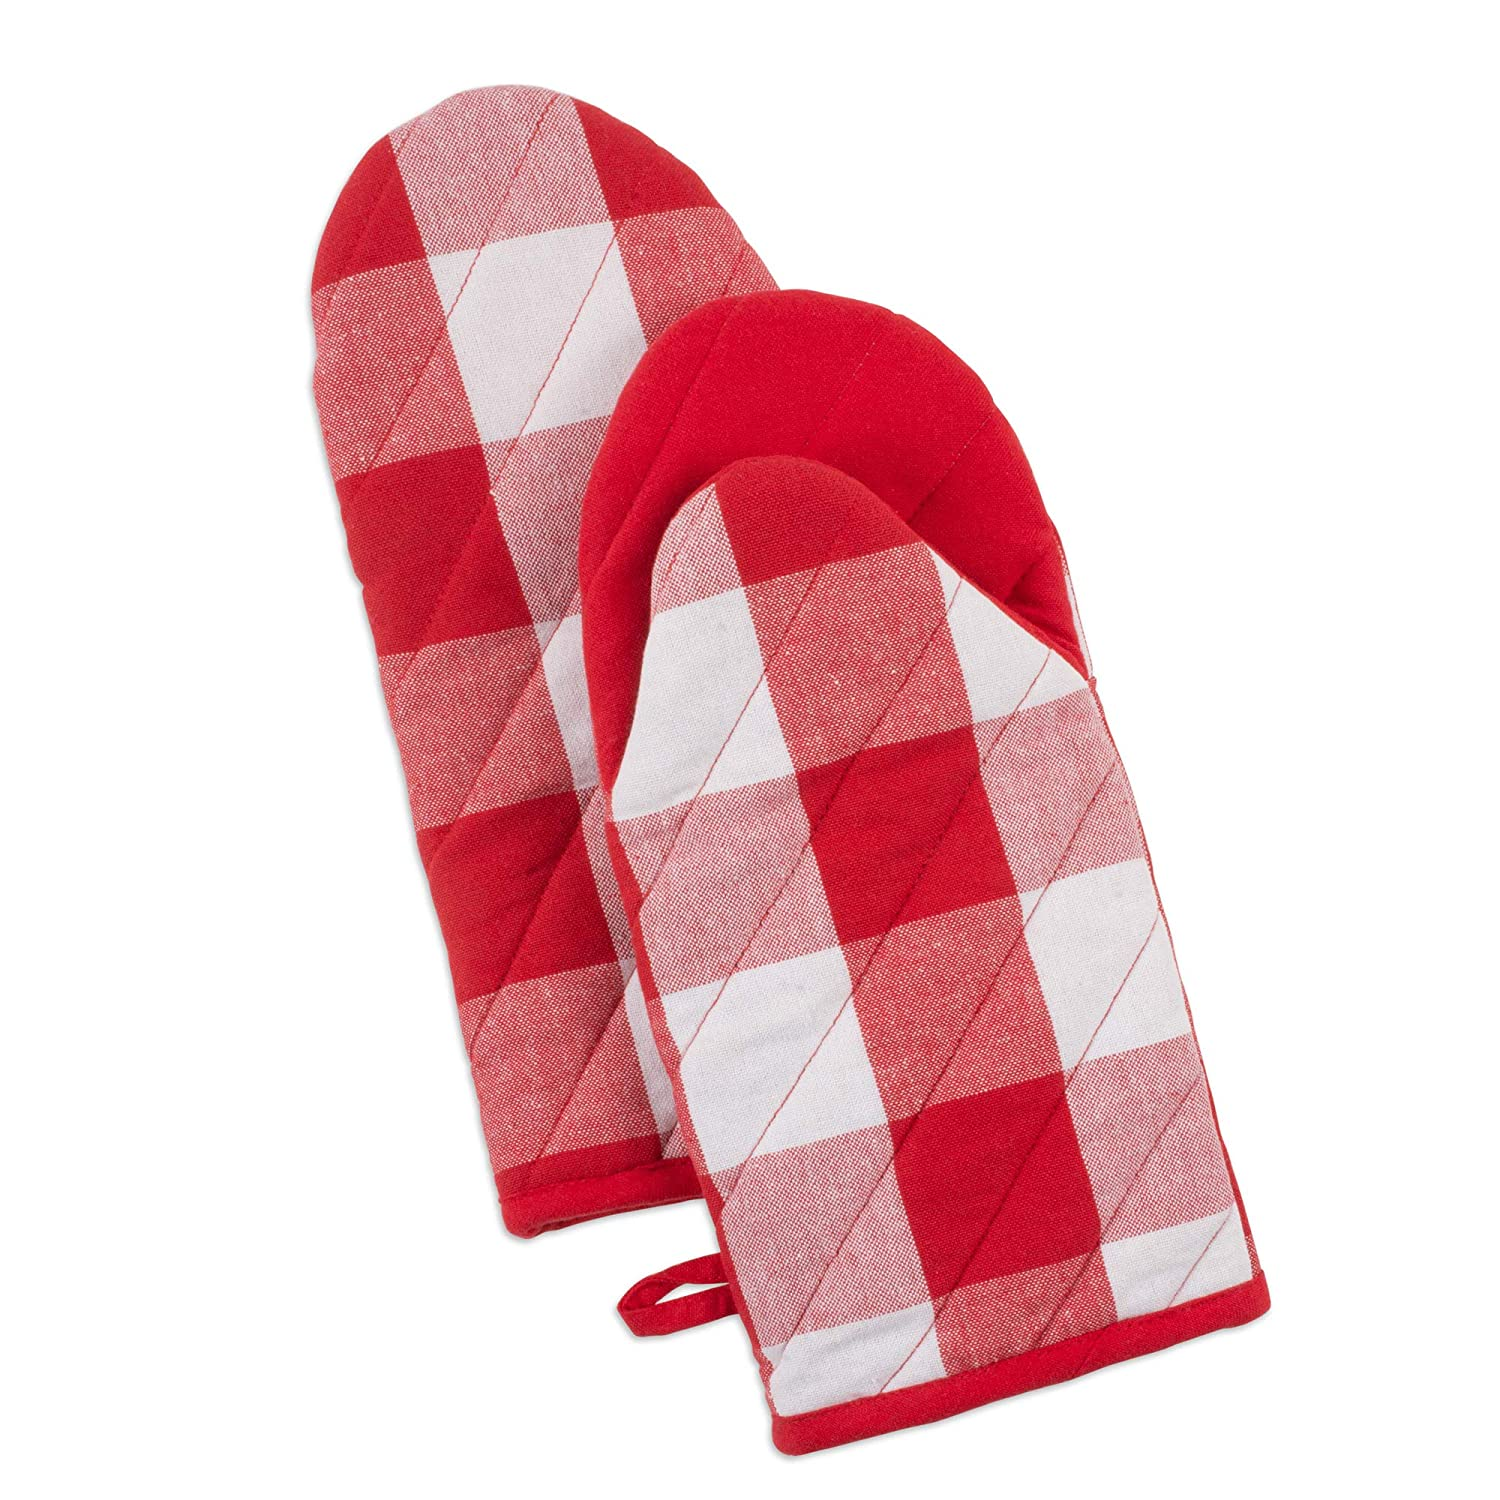 DII Buffalo Check Kitchen Collection, Oven Mitts, Red & White 2 Piece